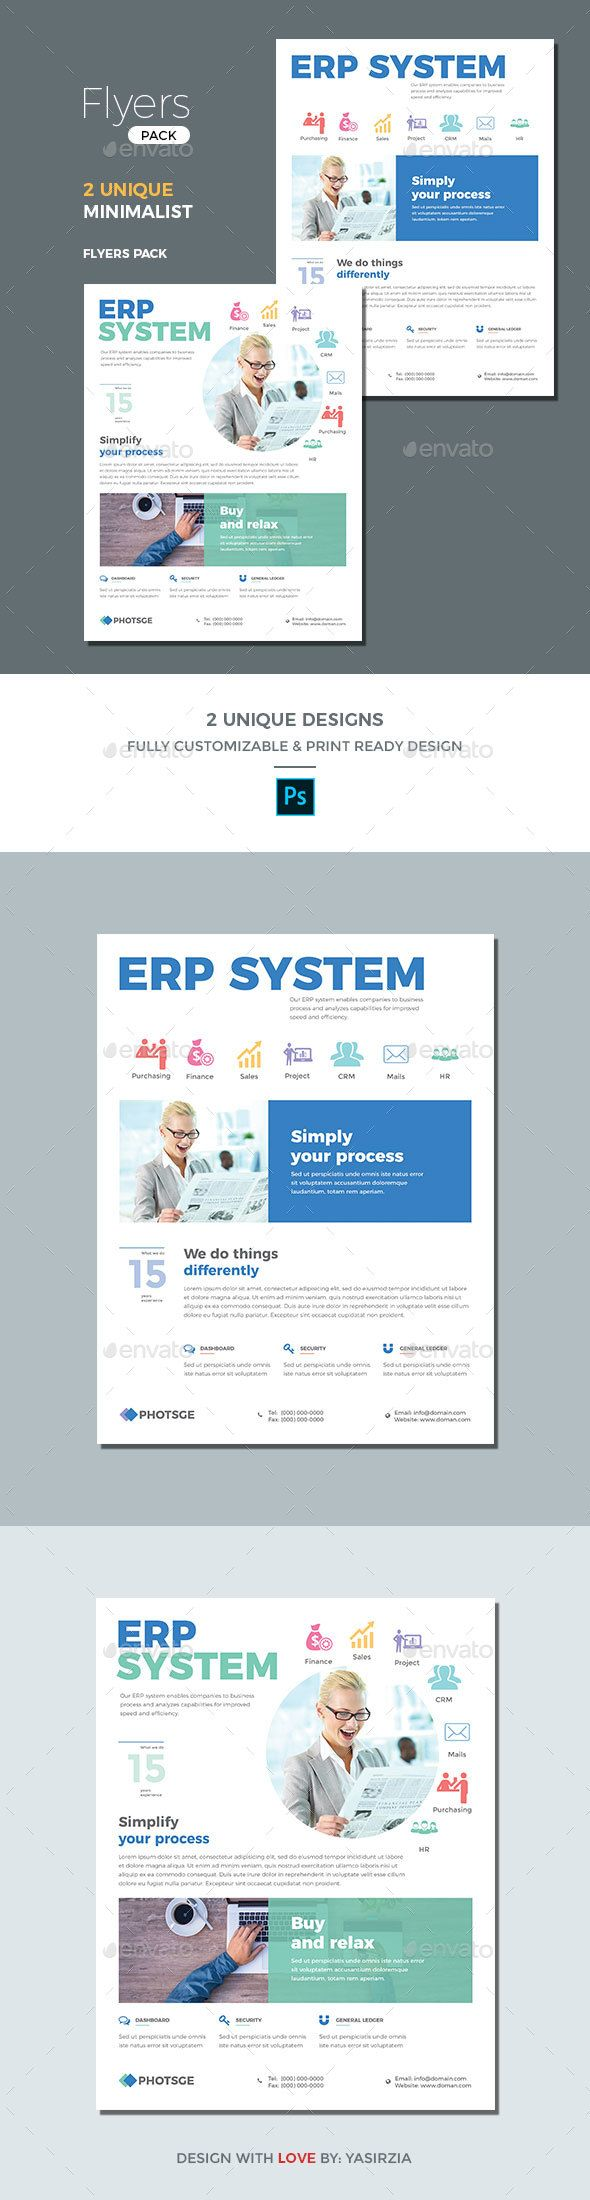 erp flyer templates flyer template template and business flyers